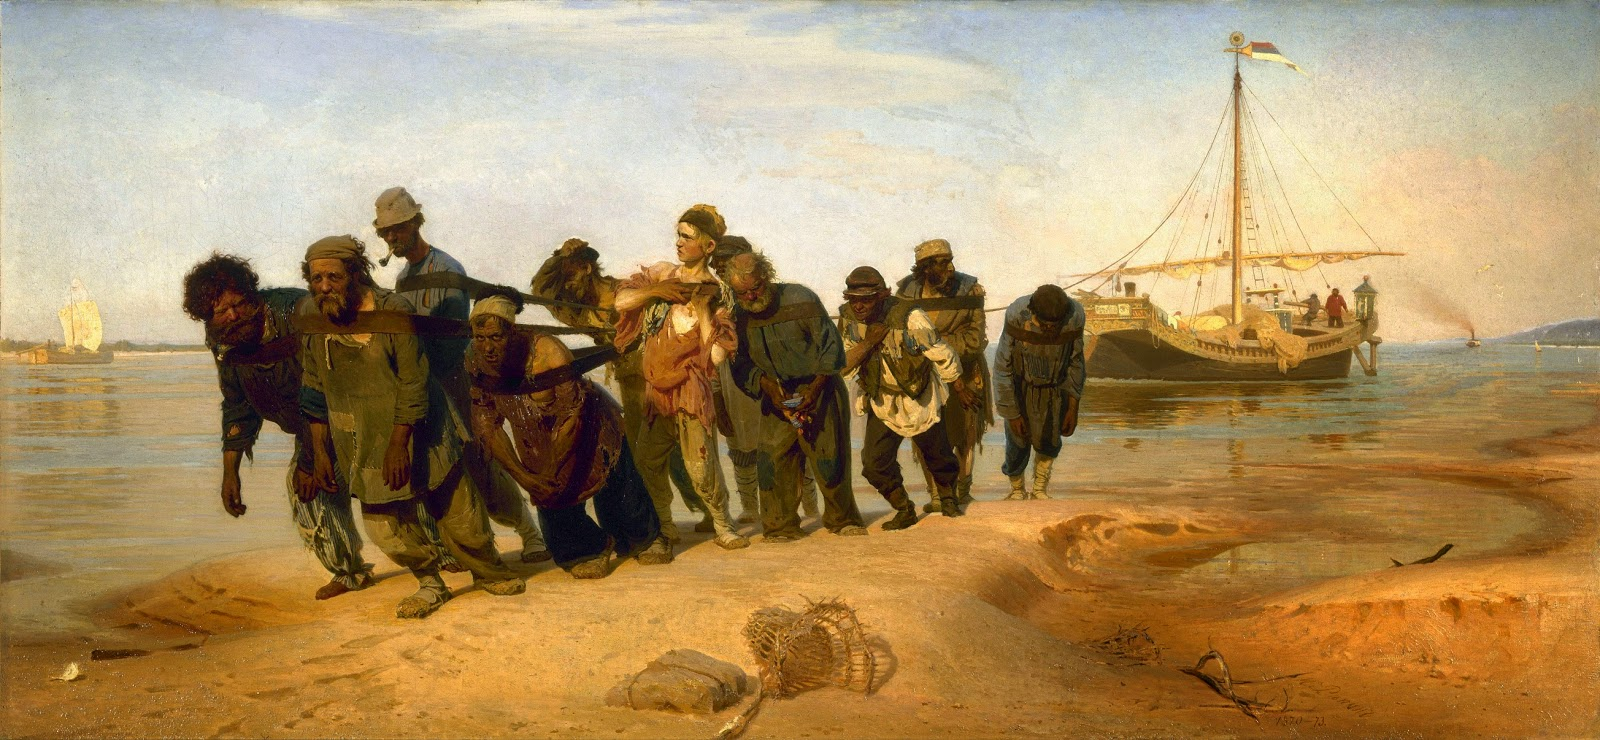 """Barge Haulers on the Volga"" Repin's artwork that fully conveys the fate of the Russian people."